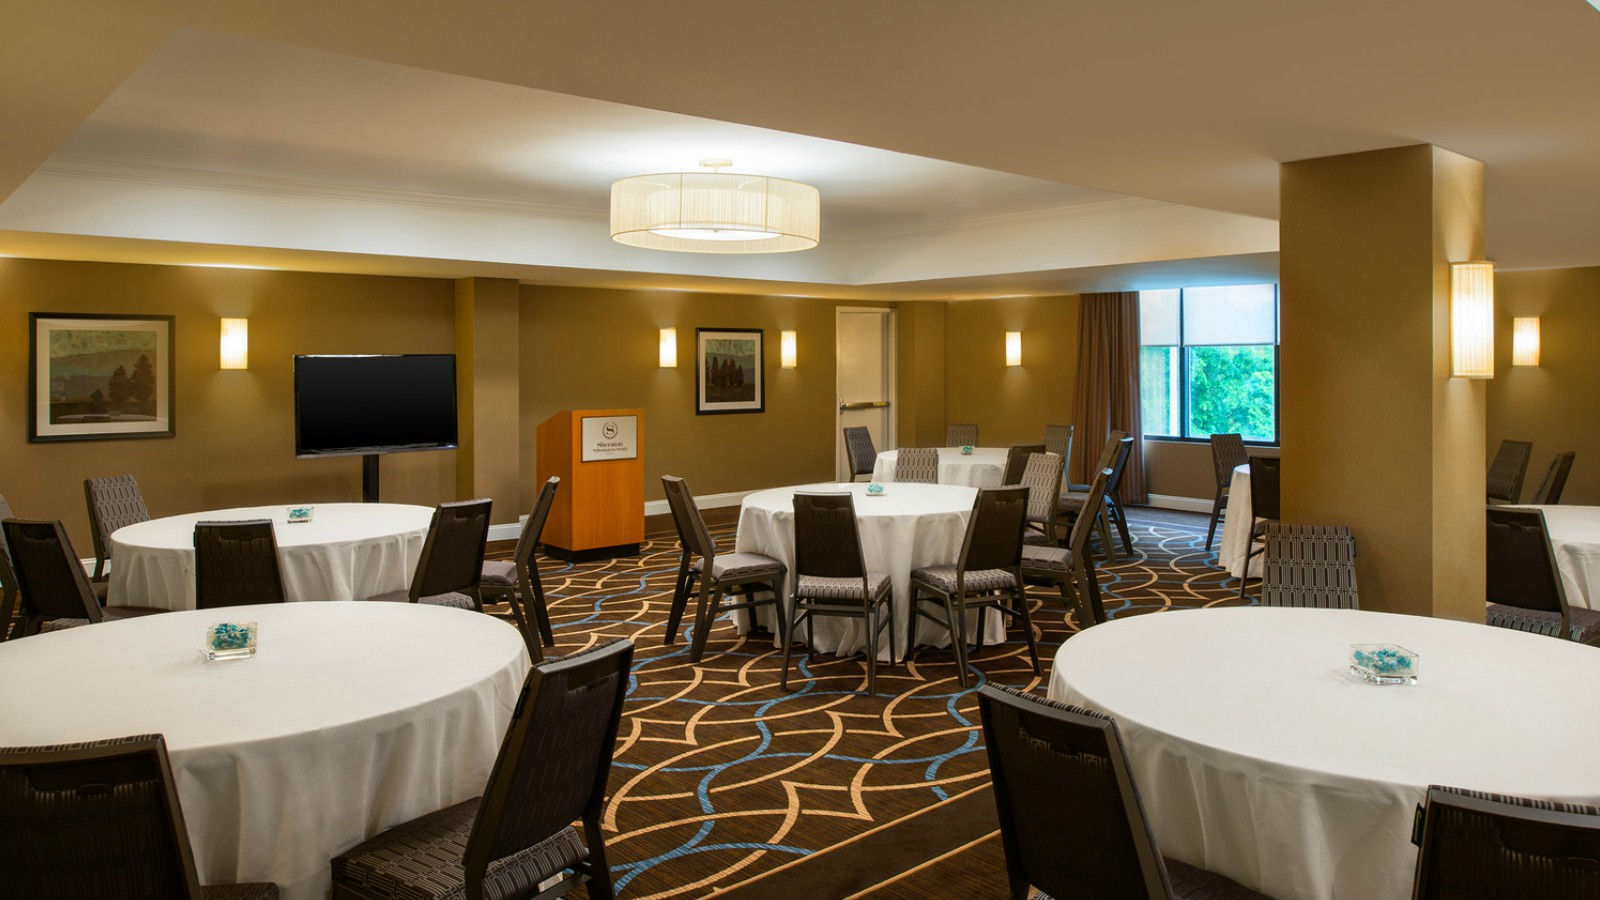 James Banquet Room